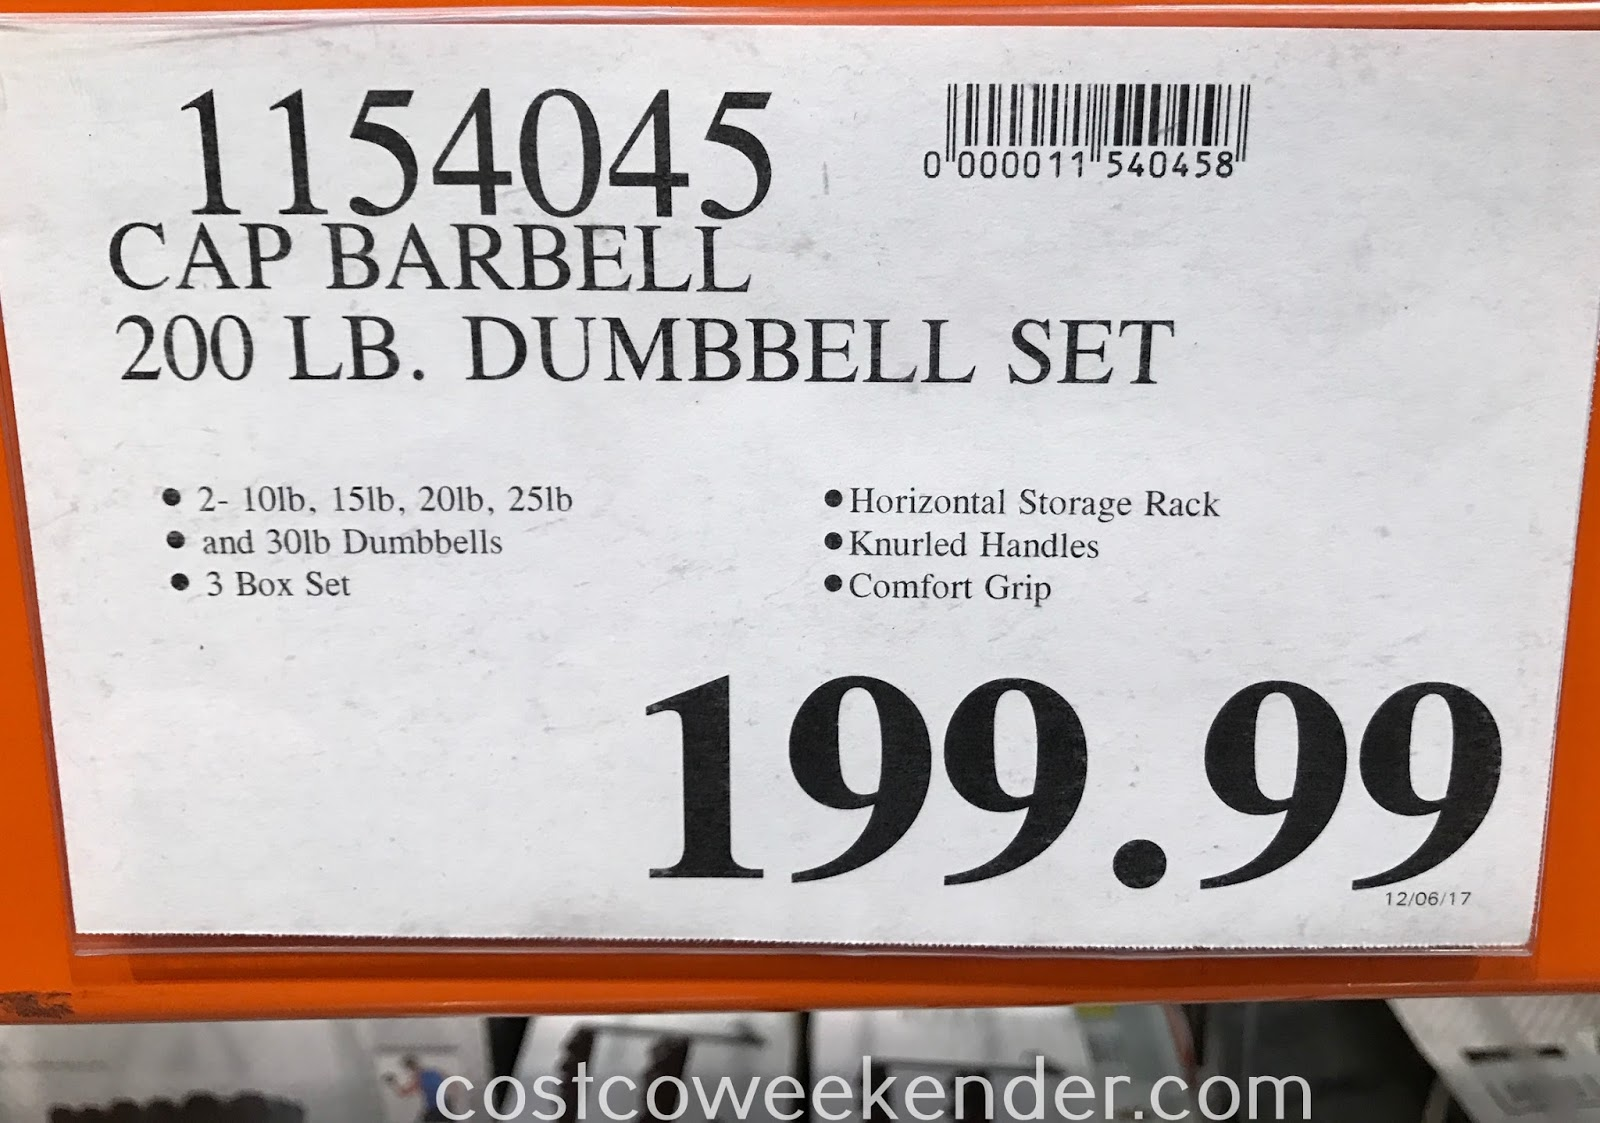 Costco 1154045 - Deal for the CAP Strength 12 Sided Dumbbell Set with Rack at Costco